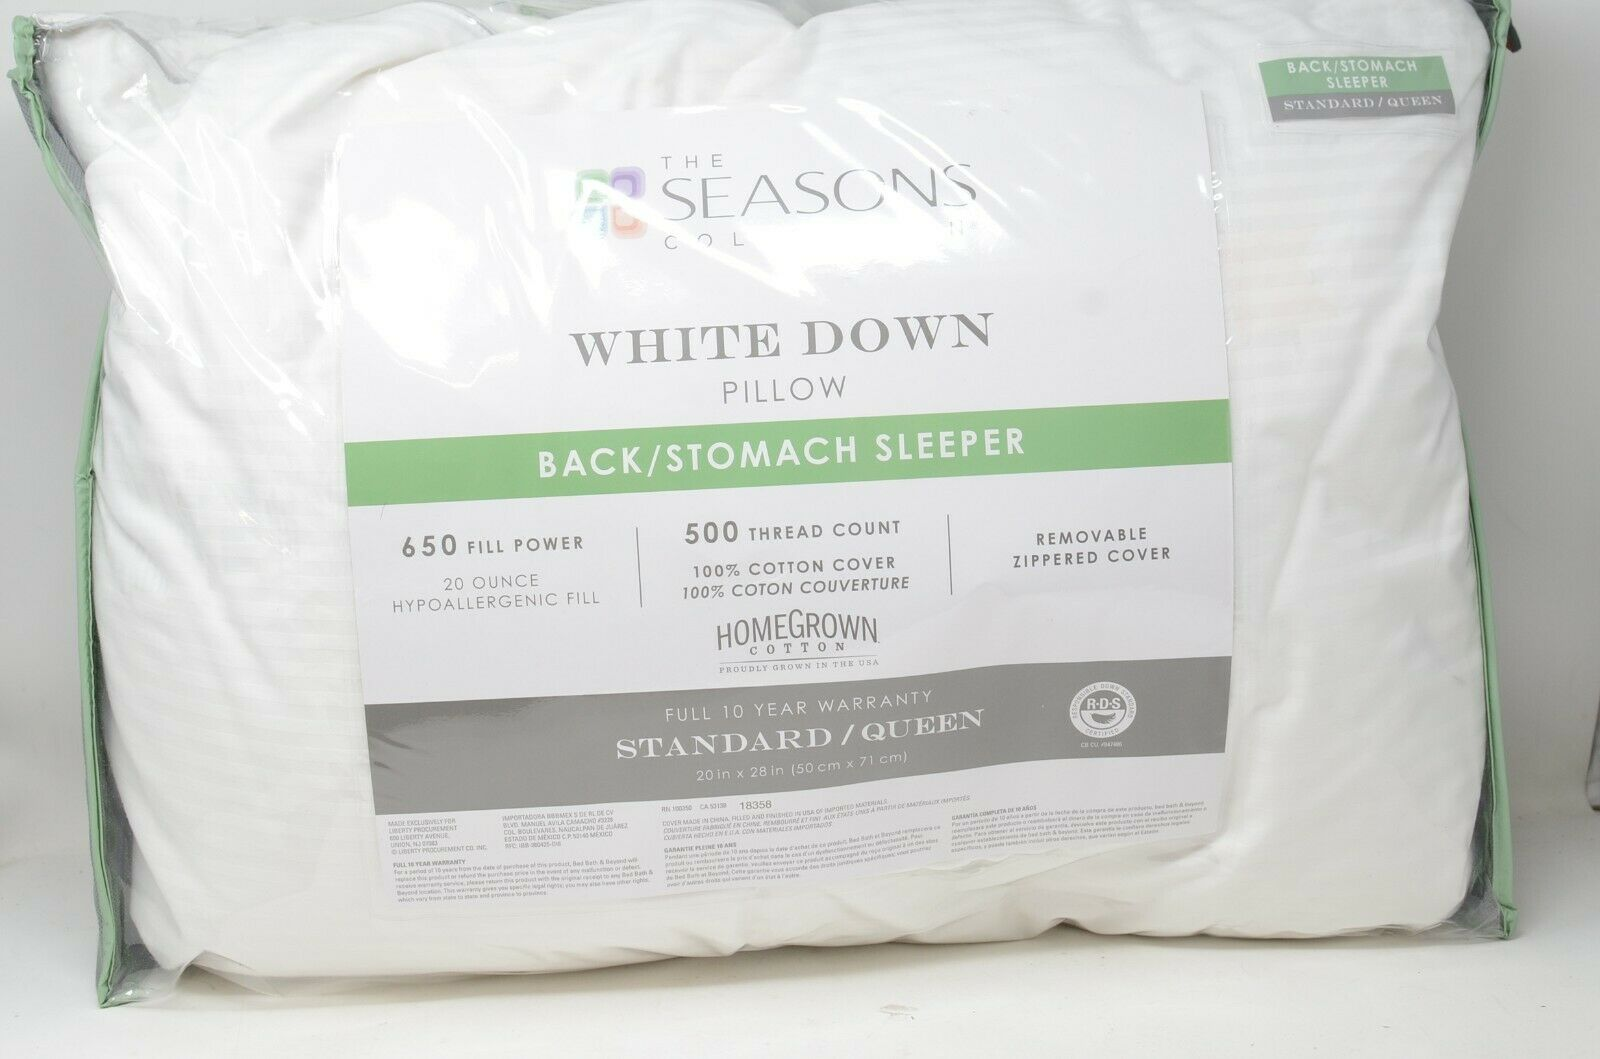 the seasons collection white down standard queen back sleeper pillow